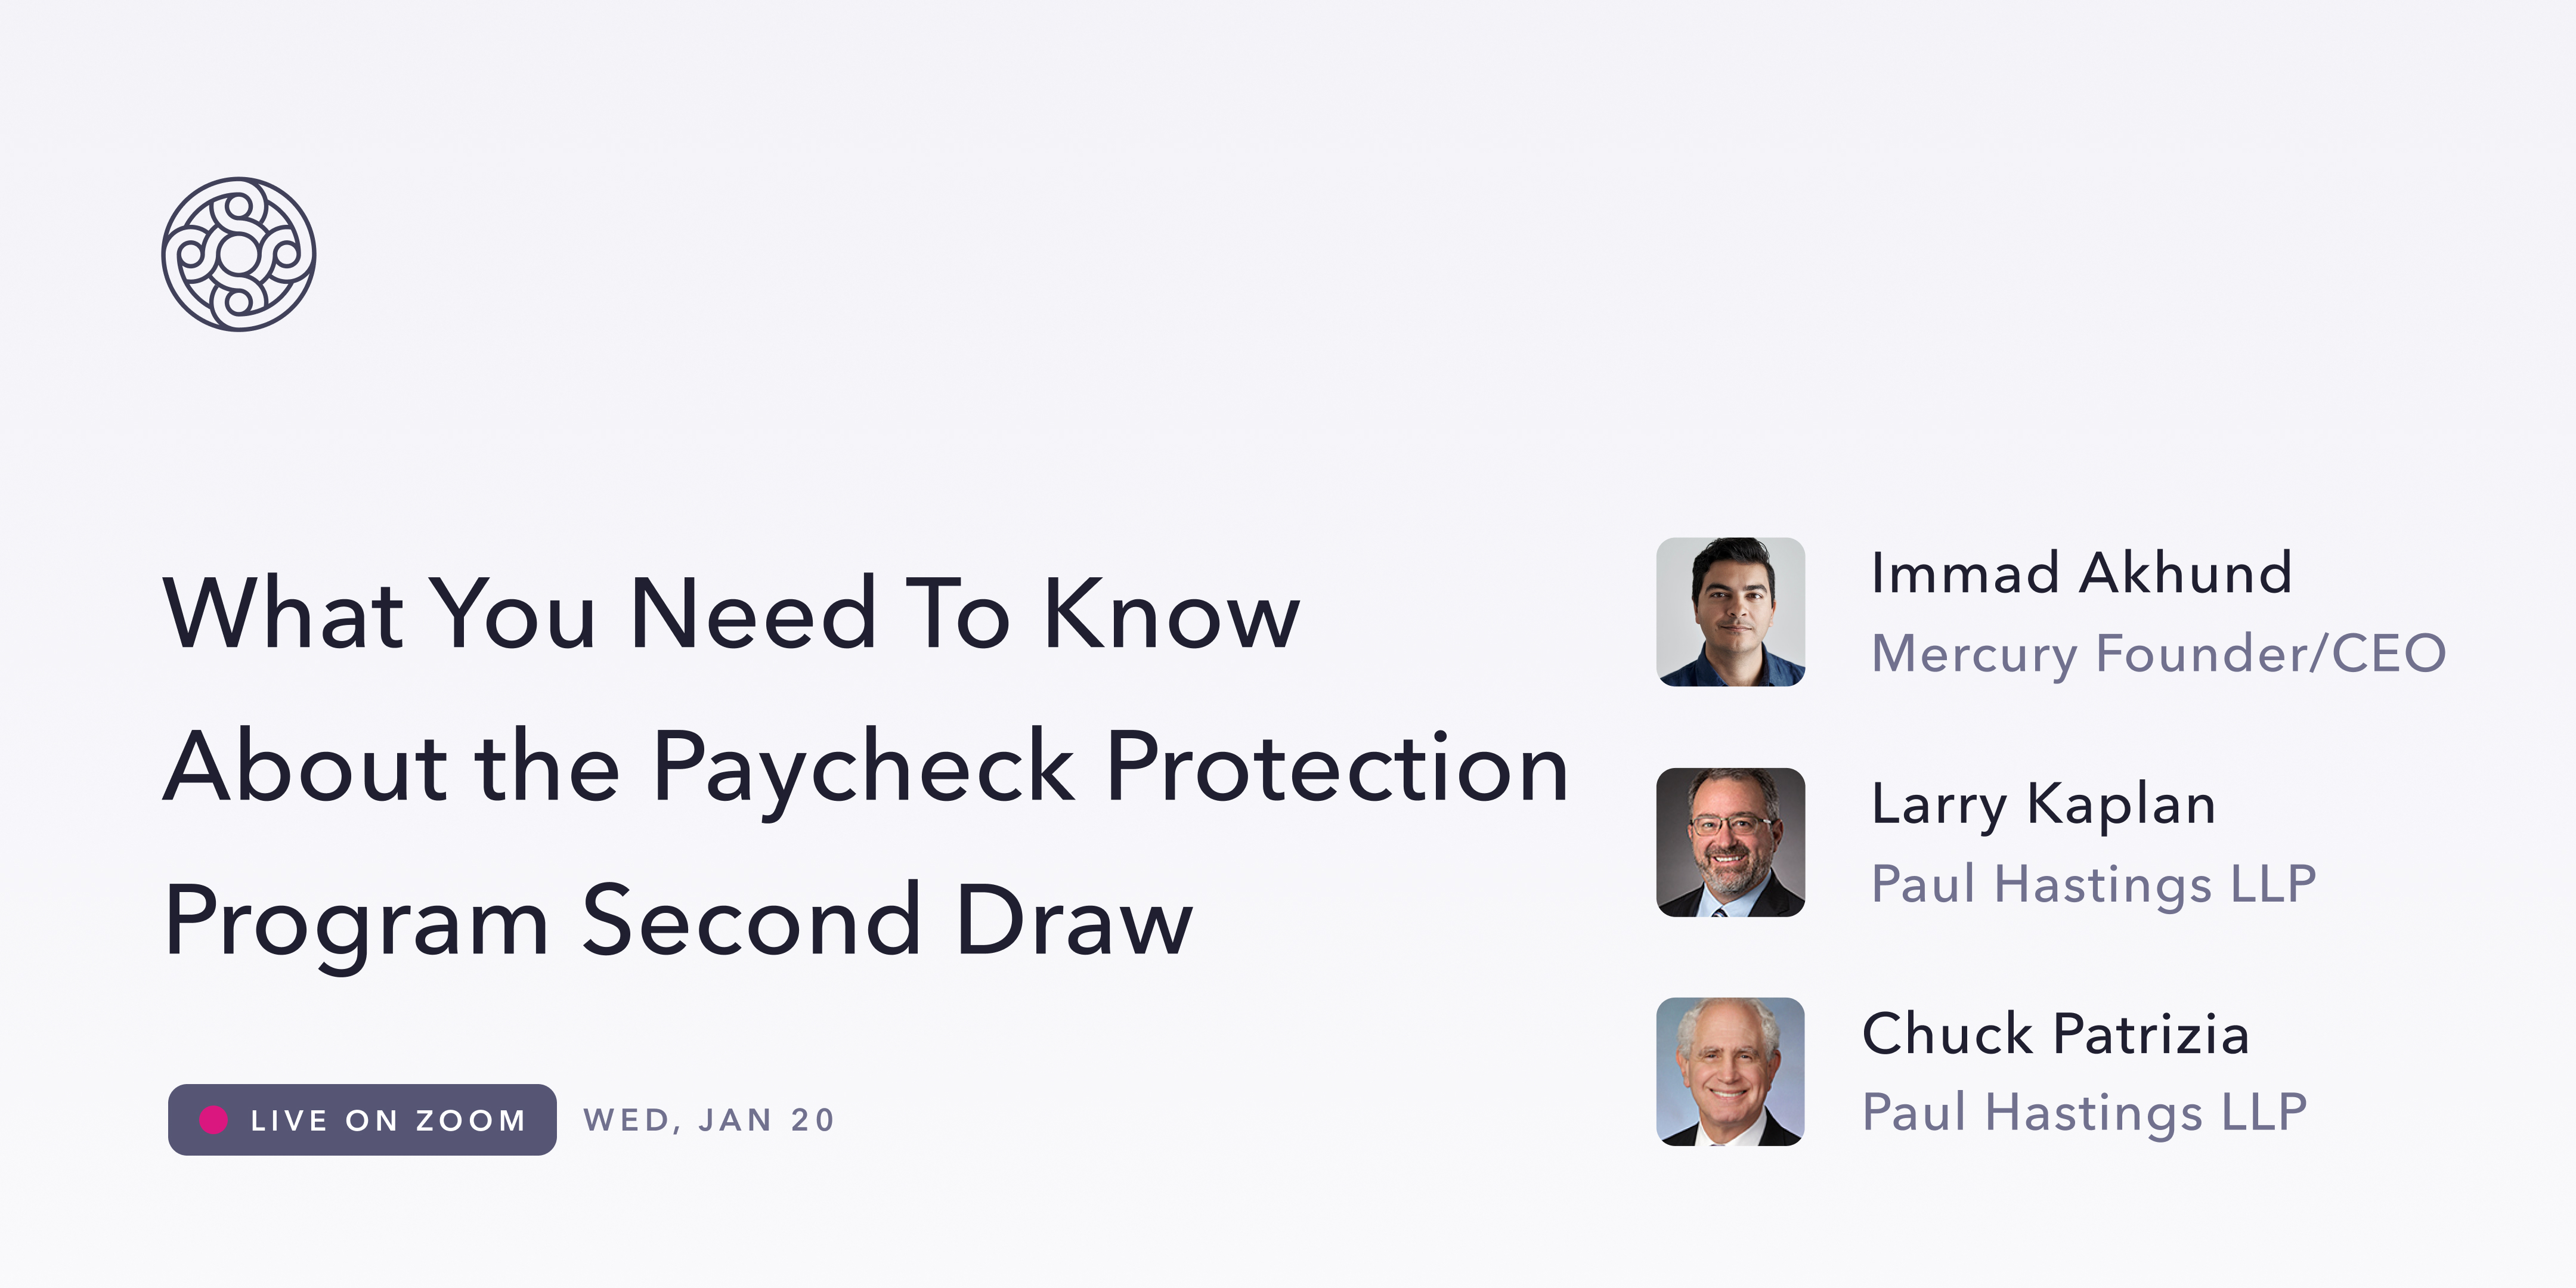 What You Need to Know About the Paycheck Protection Program Second Draw